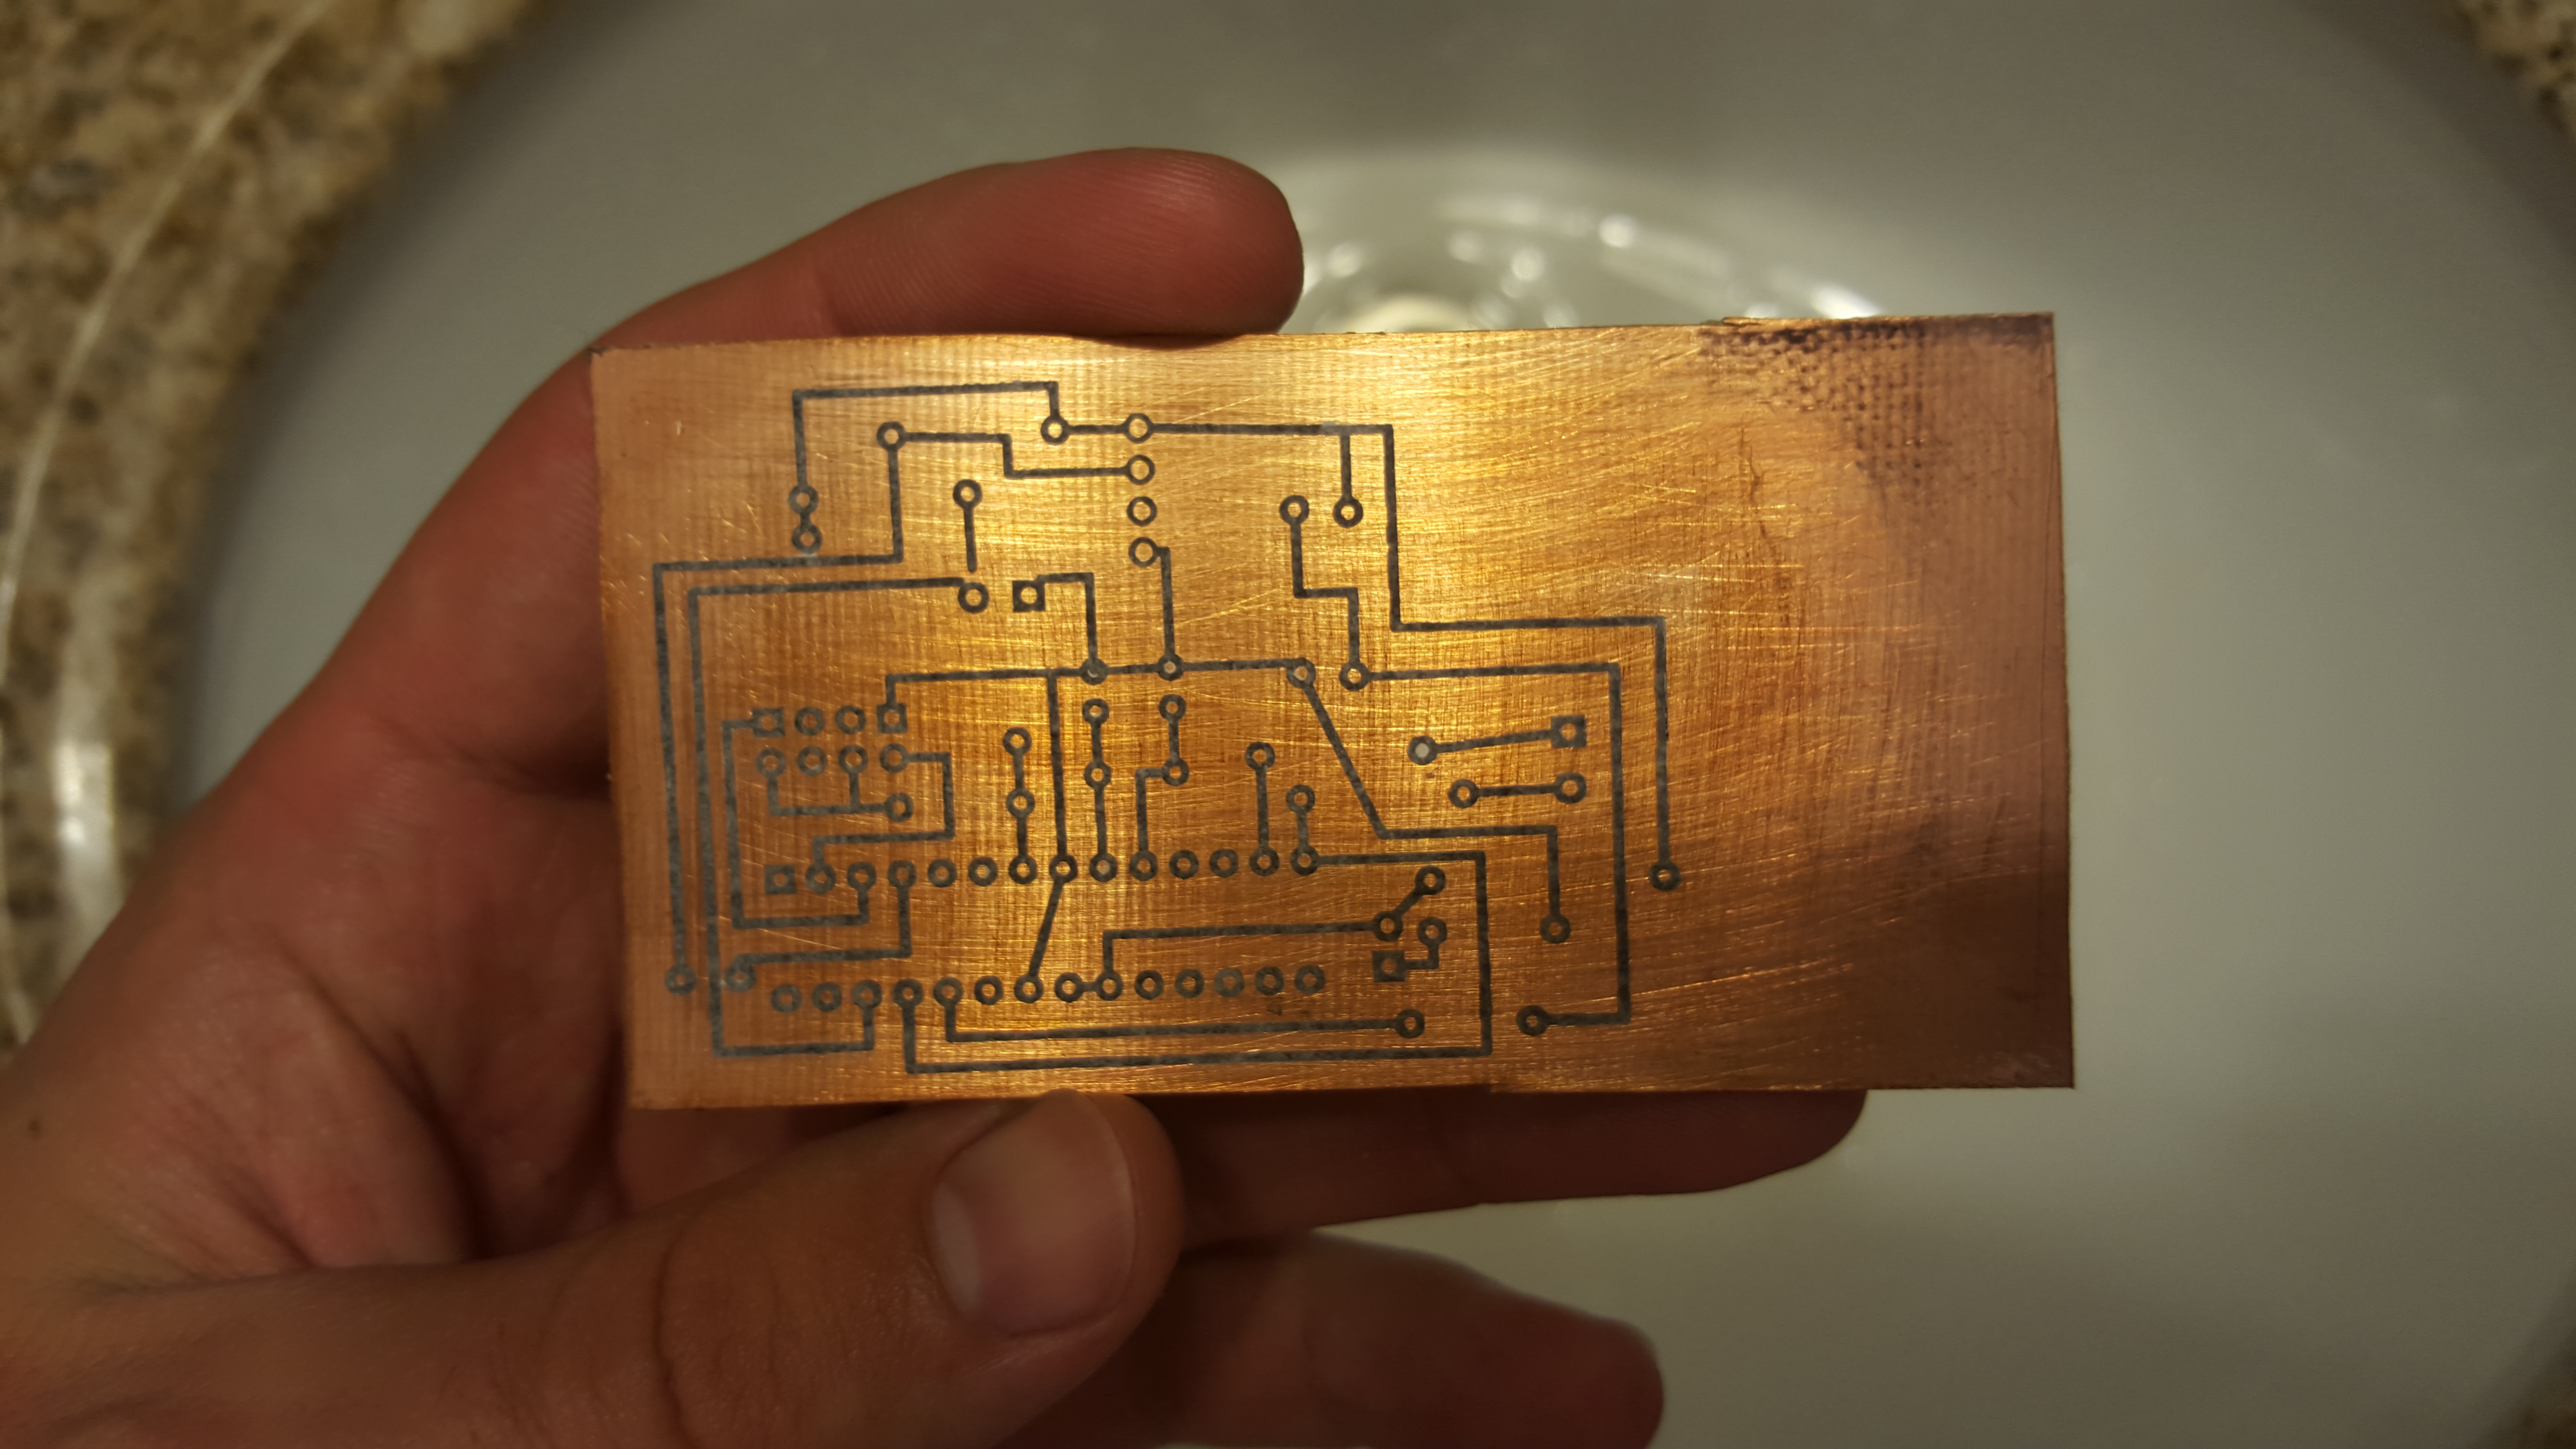 How To Make A Custom Pcb Your Arduino Projects Permanent Diy Lab Equipment Etch Own Circuit Boards Using Laser We Are Now Ready The Copper Away You Will Need Some Kind Of Plastic Container I Used Got From Dollar Store Do Not Use Anything